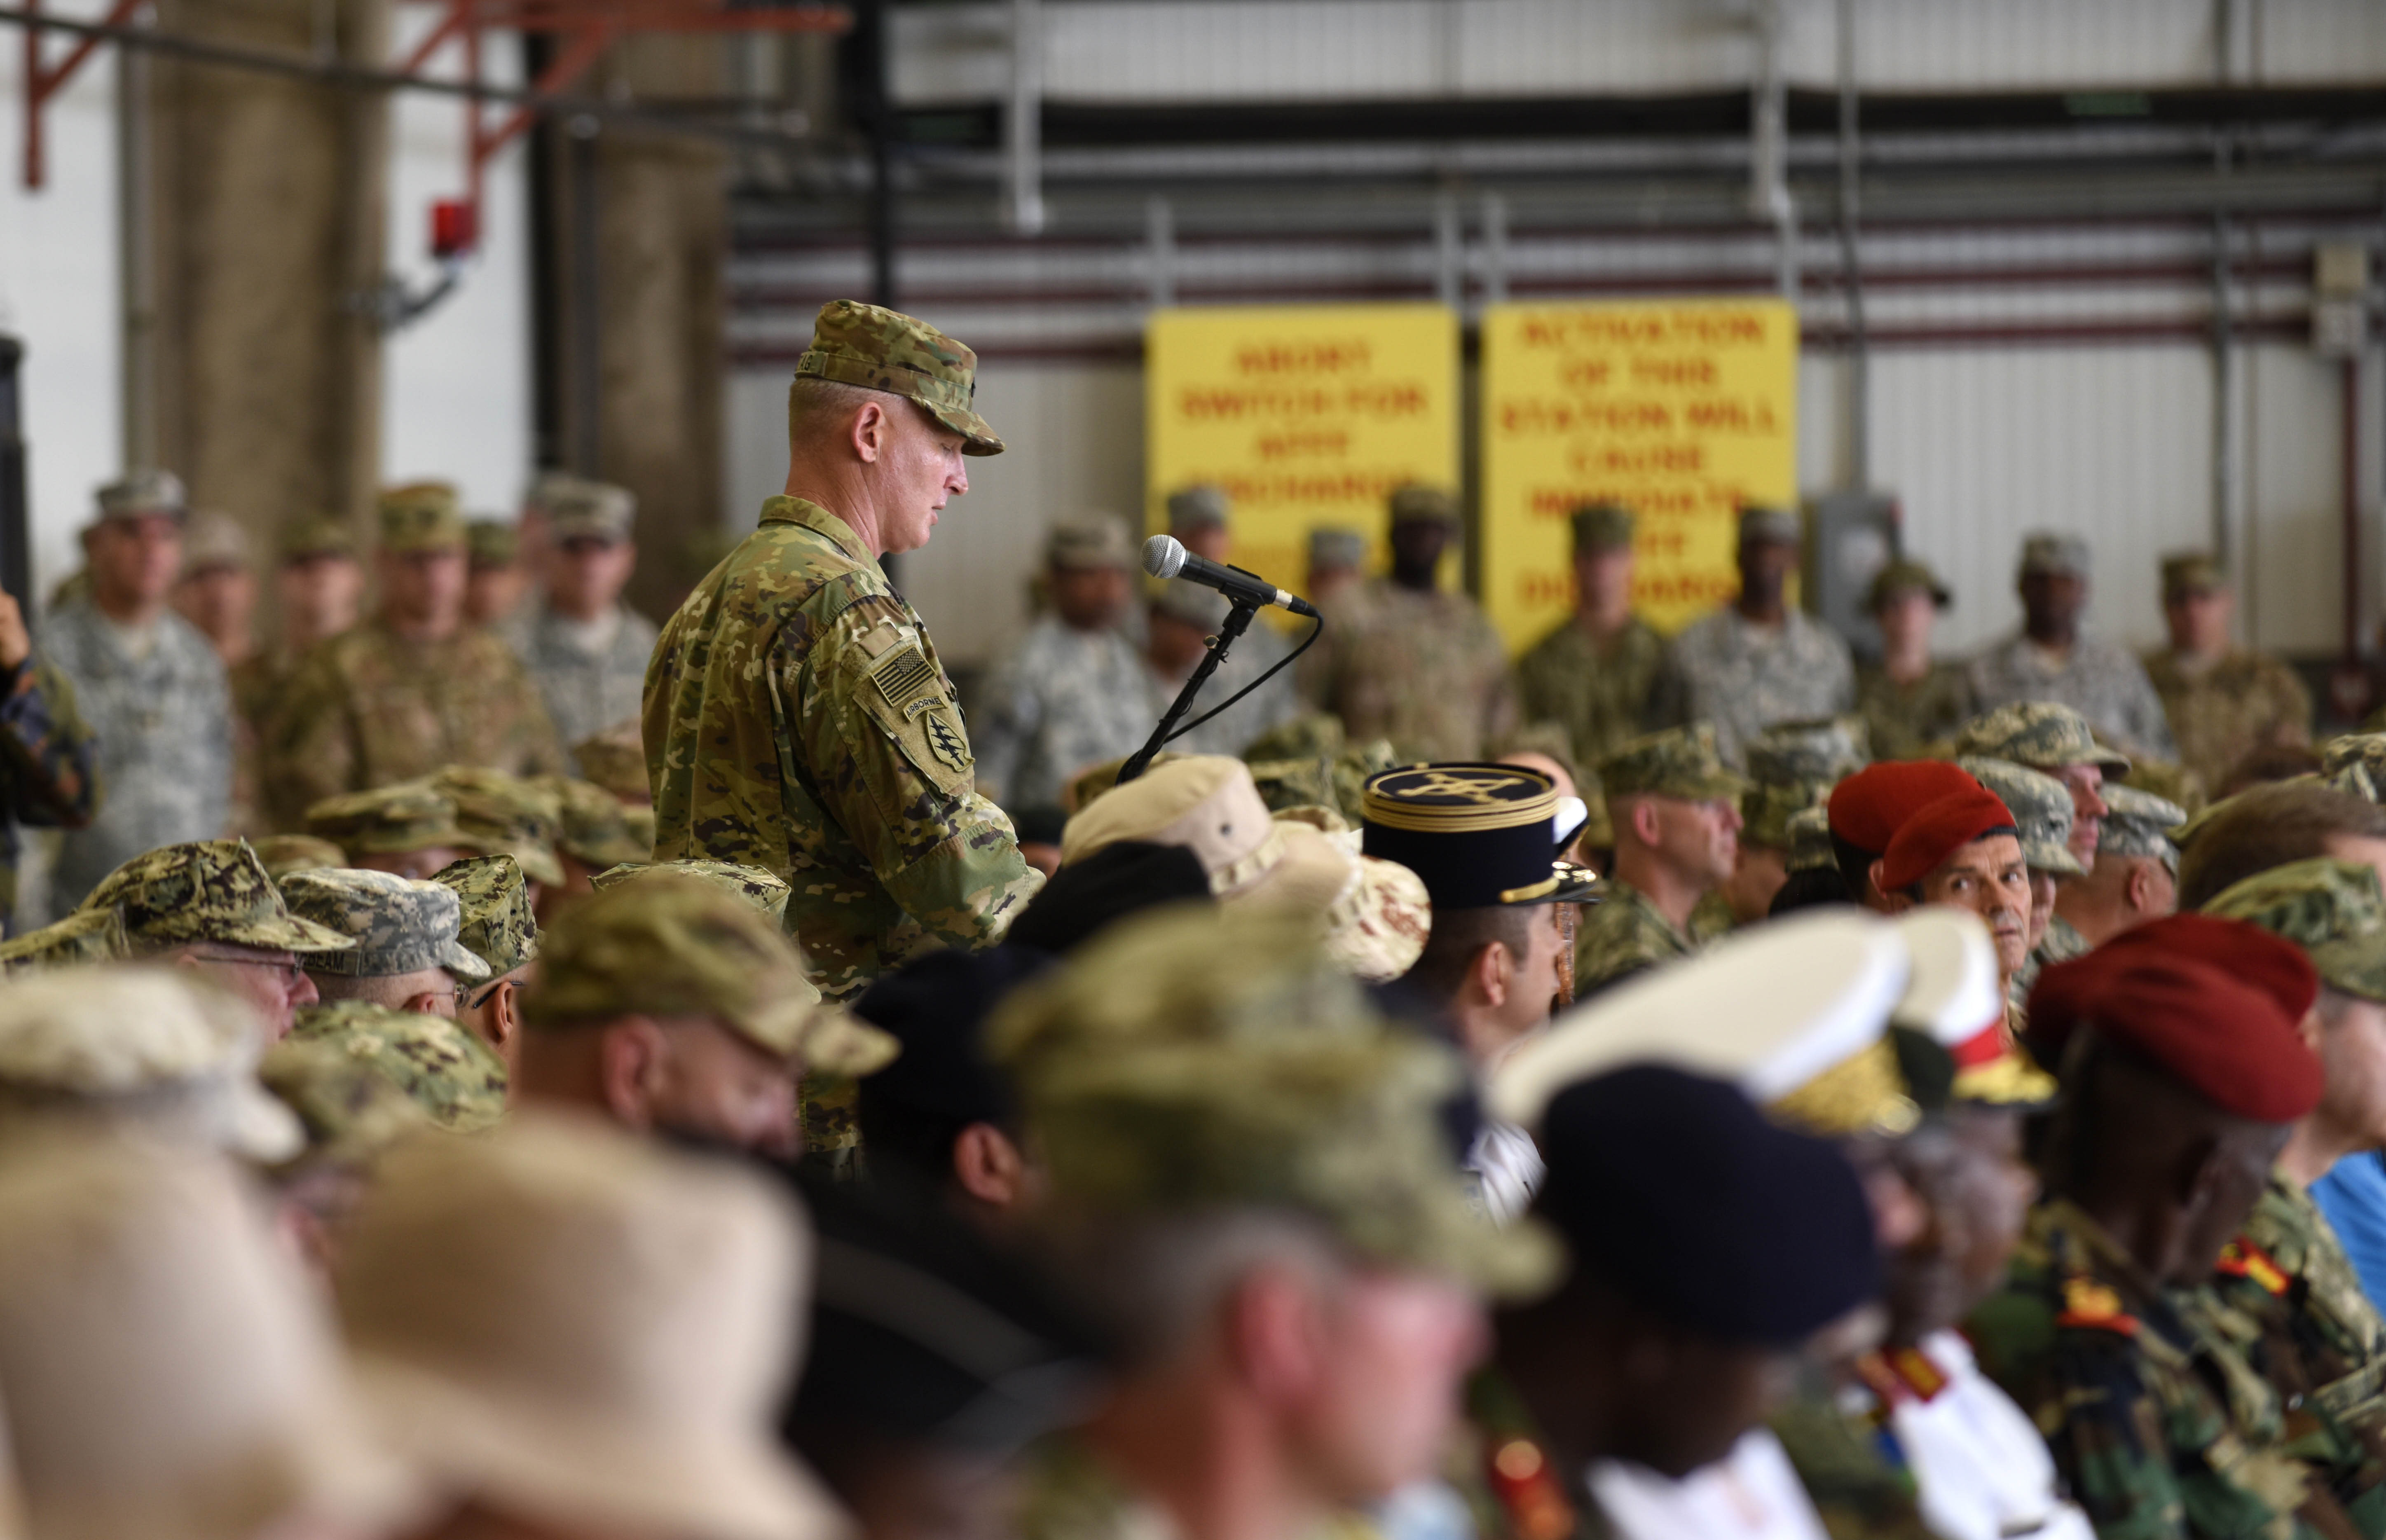 U.S. Army Brig. Gen. Kurt Sonntag, incoming Combined Joint Task Force-Horn of Africa commanding general, speaks at a change of command ceremony April 13, 2016, at Camp Lemonnier, Djibouti. Sonntag is now in command of CJTF-HOA and responsible for its impact on the East African region. (U.S. Air Force photo by Staff Sgt. Kate Thornton)